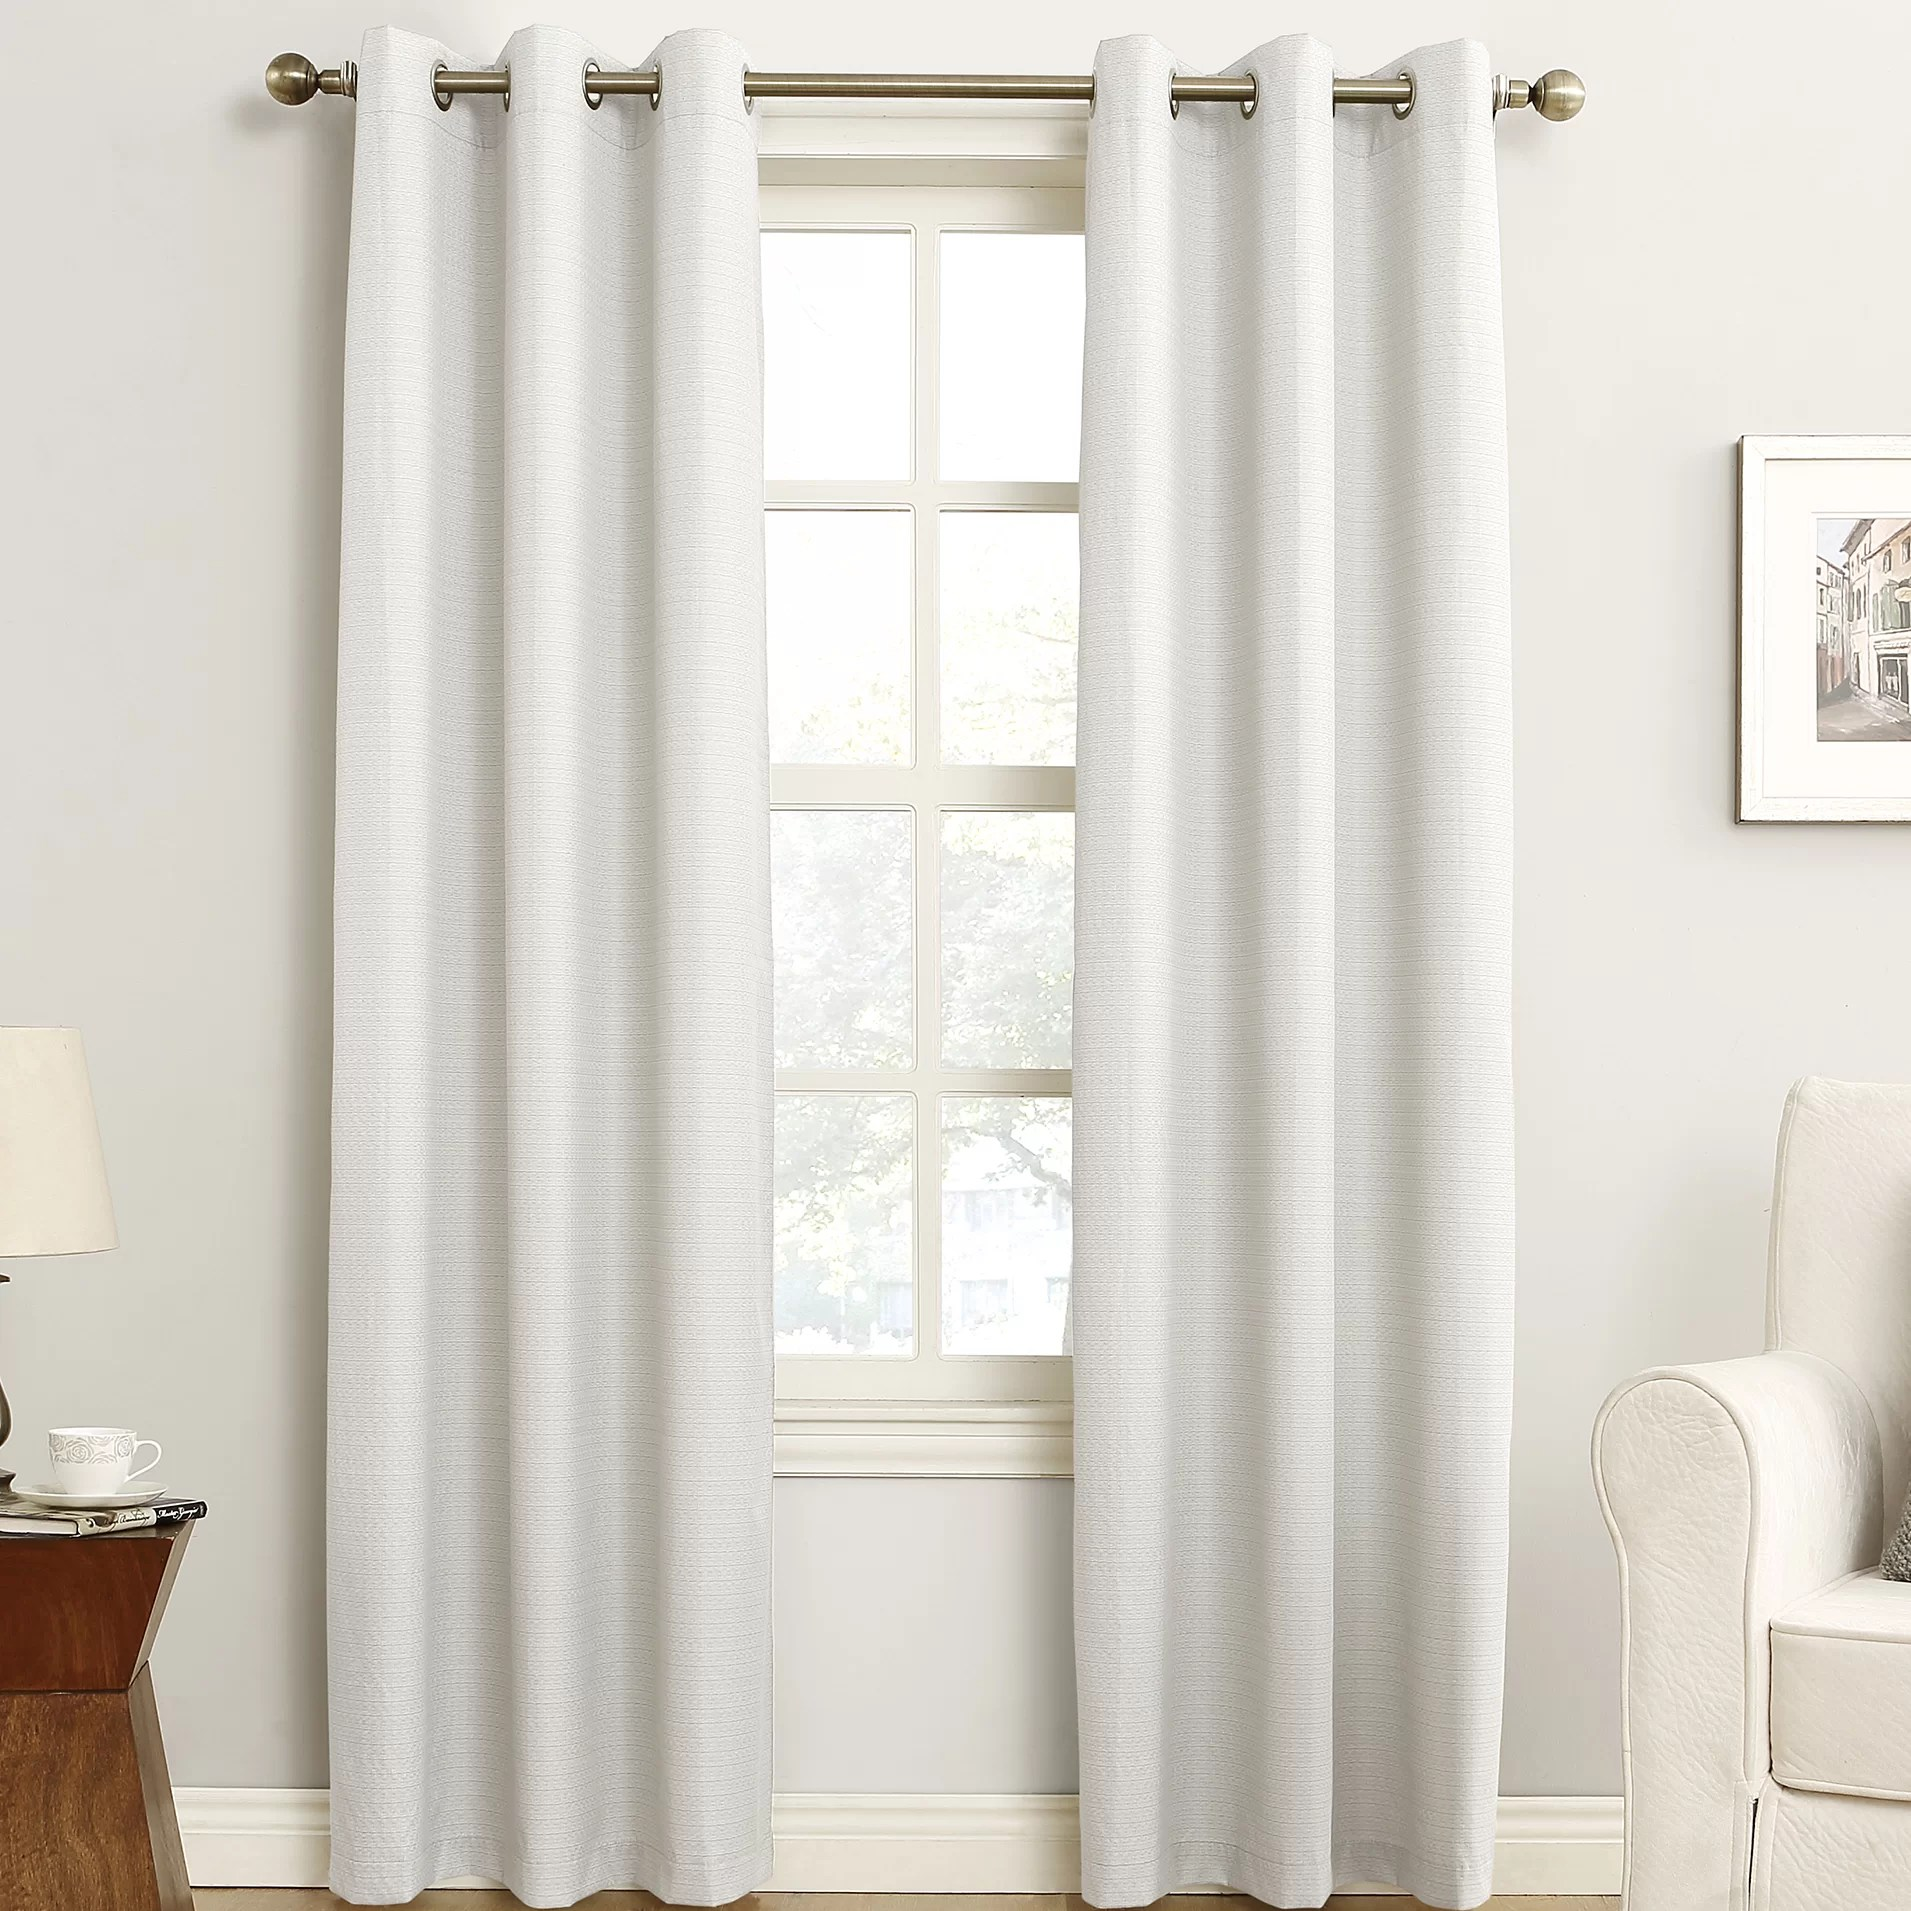 Curtain Insulation Fabric Cooper Textured Solid Light Filtering Thermal Insulated Grommet Single Curtain Panel